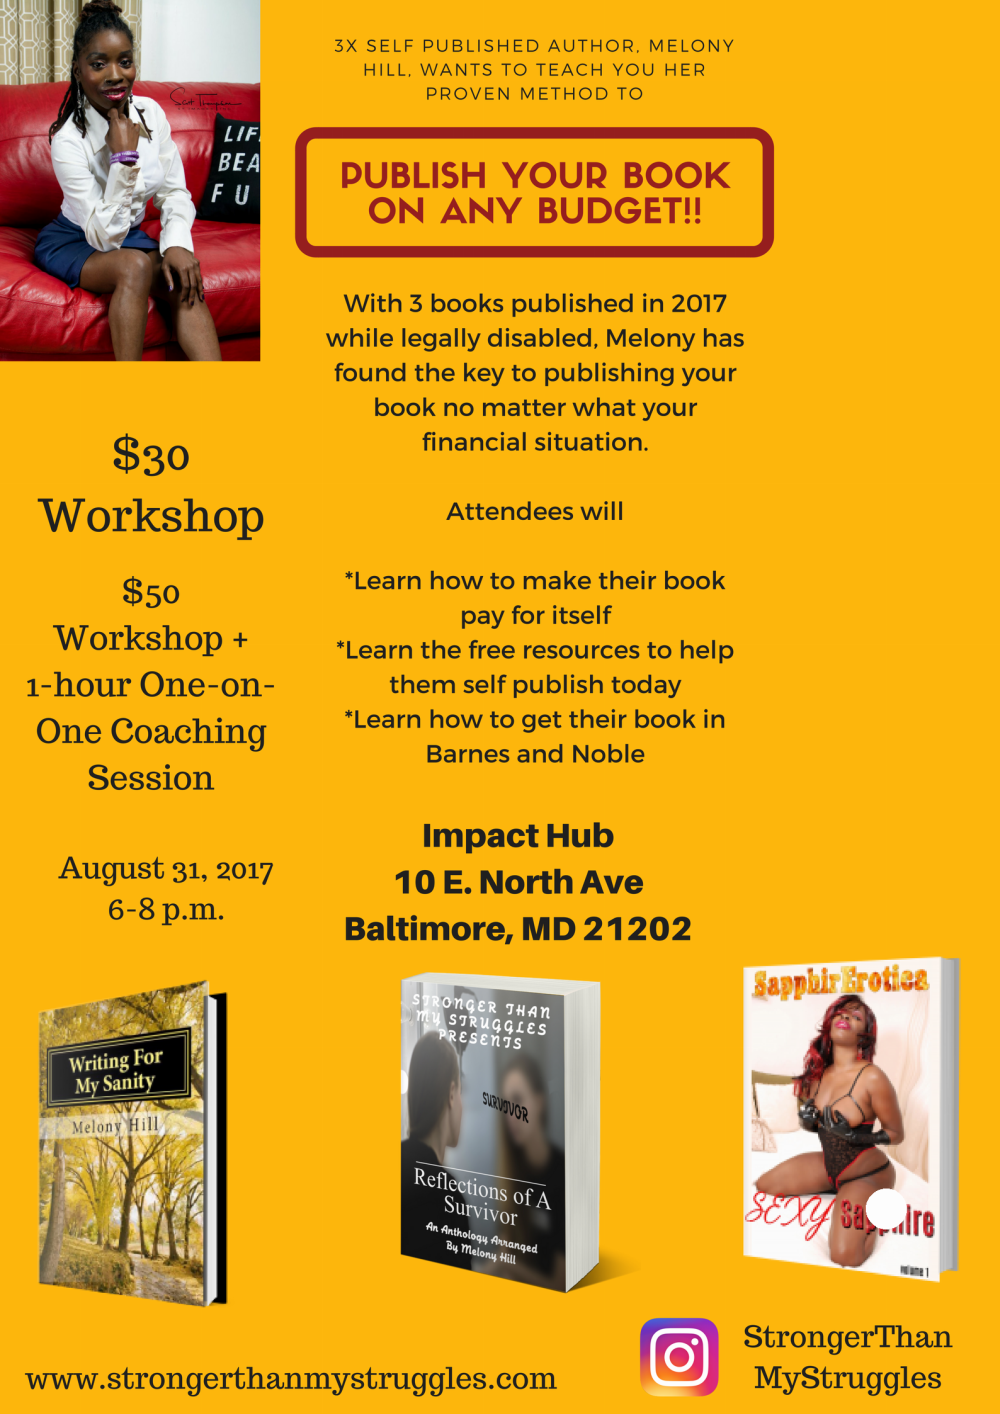 PUBLISH BOOK ON ANY BUDGET